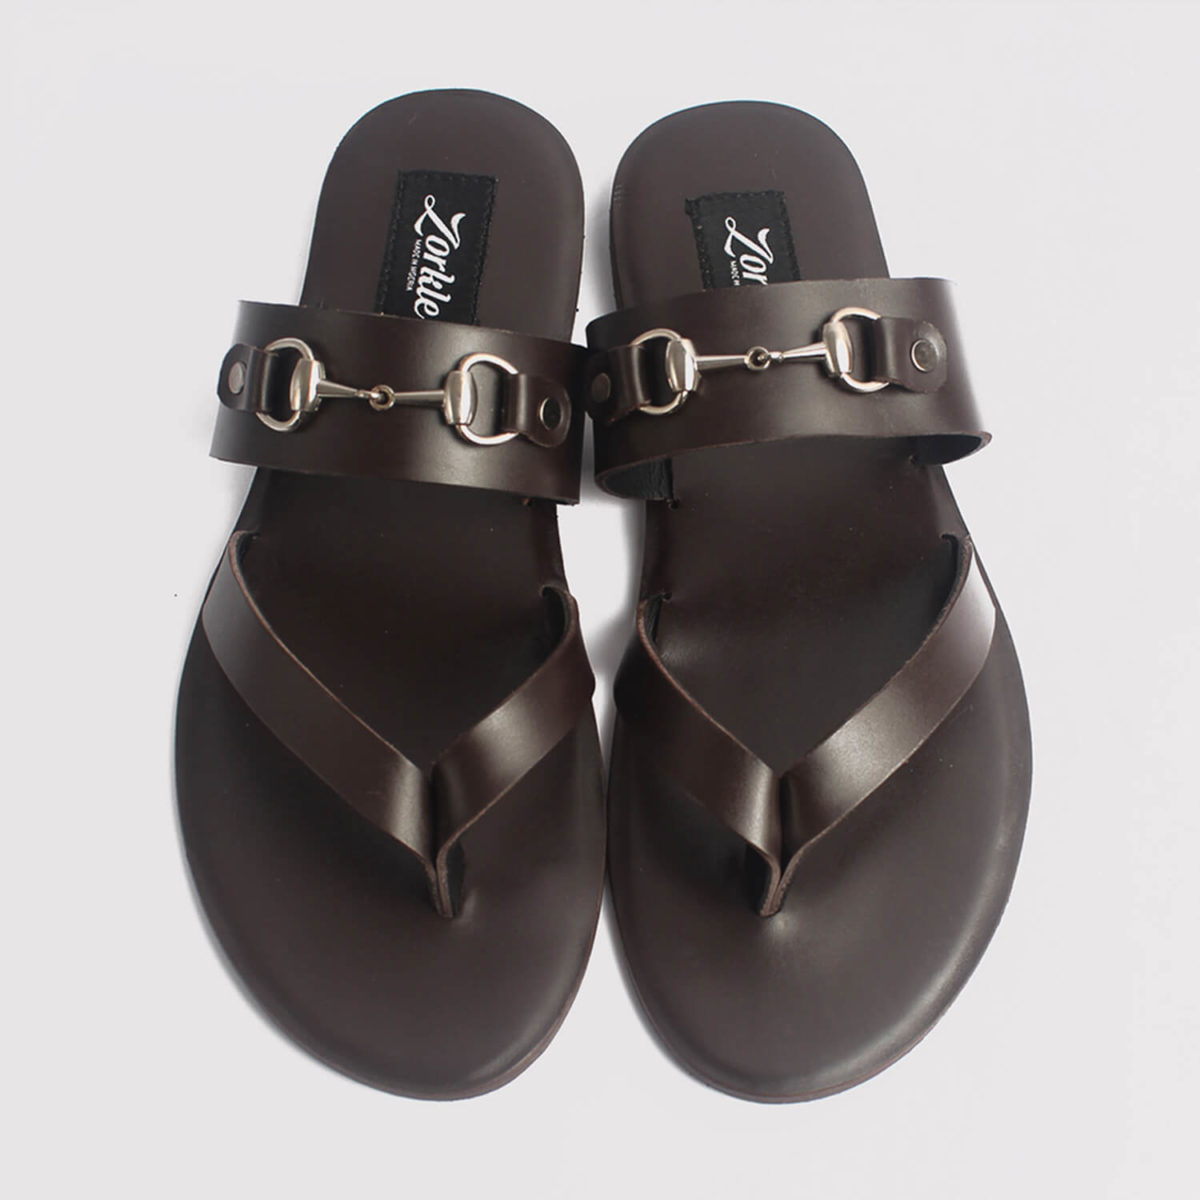 trey bow slippers coffee brown leather zorkle shoes lagos nigeria